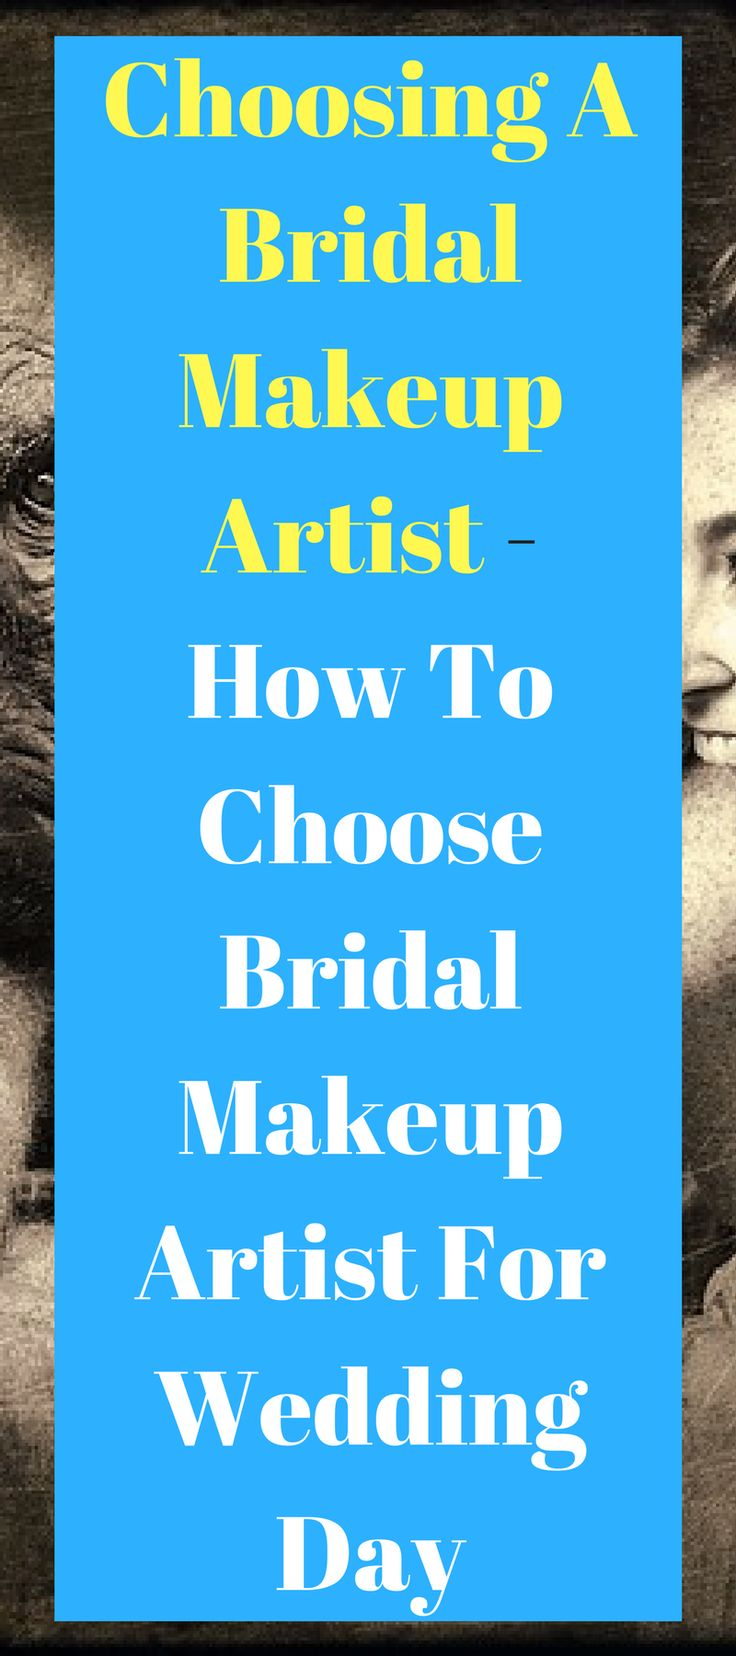 [Choosing A Bridal Makeup Artist] – How To Choose Bridal Makeup Artist For Wedding Day #bridalmakeupartist #choosingabridalmakeupartist bridal makeup artist | bridal makeup artist business | bridal makeup artist quotes | bridal makeup artist kit | bridal makeup artist tips | Bridal Makeup Artists.com | Jess Chapman Bridal Makeup Artist | Bridal Makeup Artist VIjay | Bridal Makeup Artistry | Bridal Makeup Artistry |